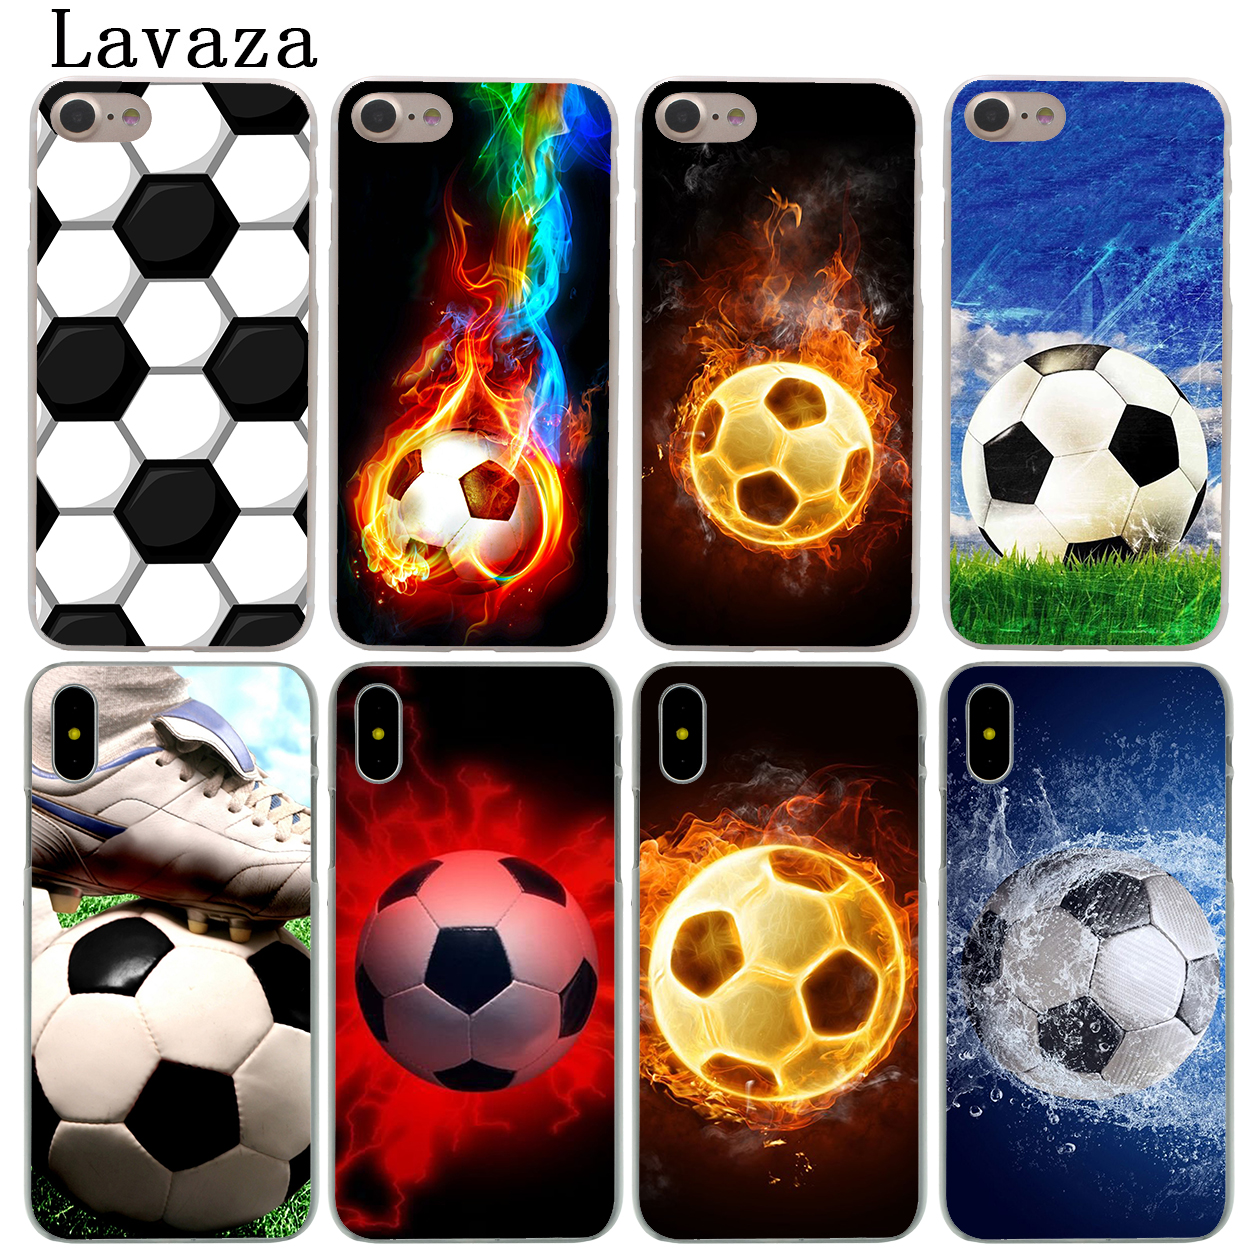 Lavaza Sports Soccer Football Hard Fashion Phone Shell Case for Apple iPhone X 10 8 7 6 6S Plus 5 5S SE 5C 4 4S Coque Cover